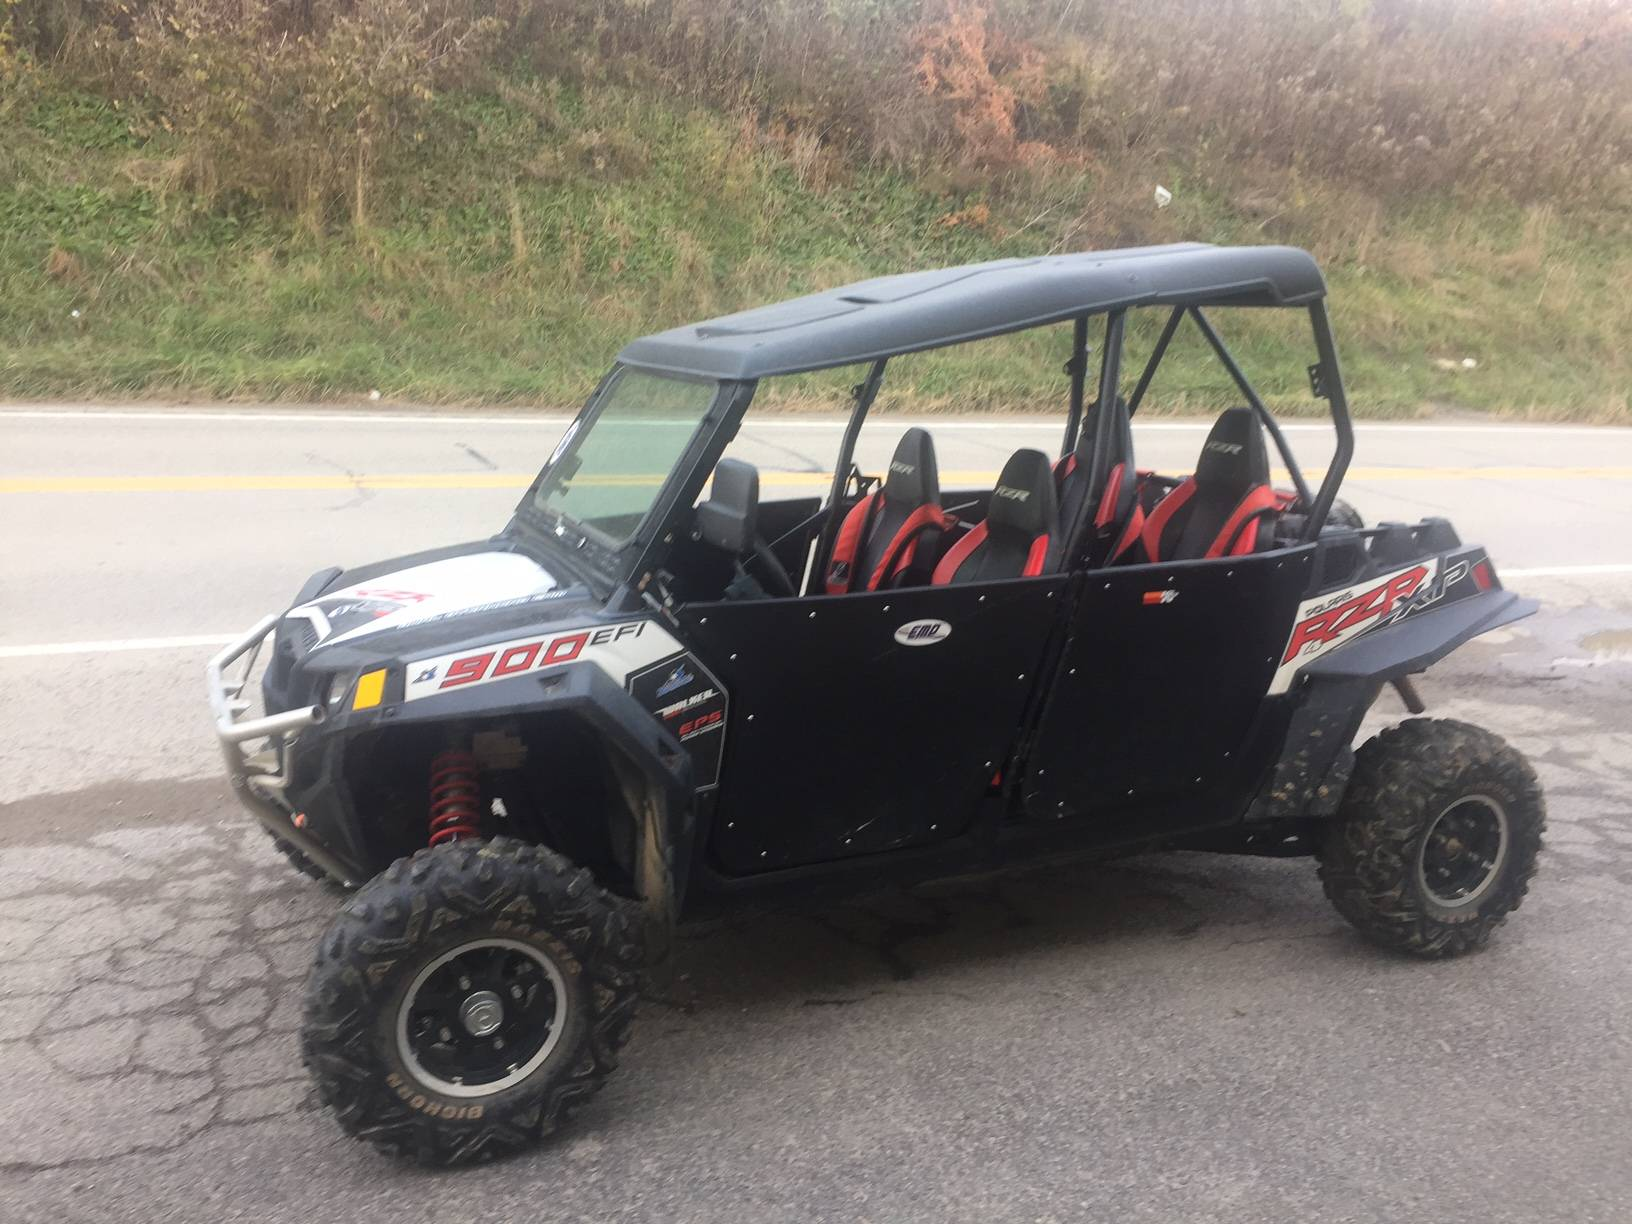 hight resolution of 2013 polaris rzr xp 4 900 eps le in claysville pennsylvania